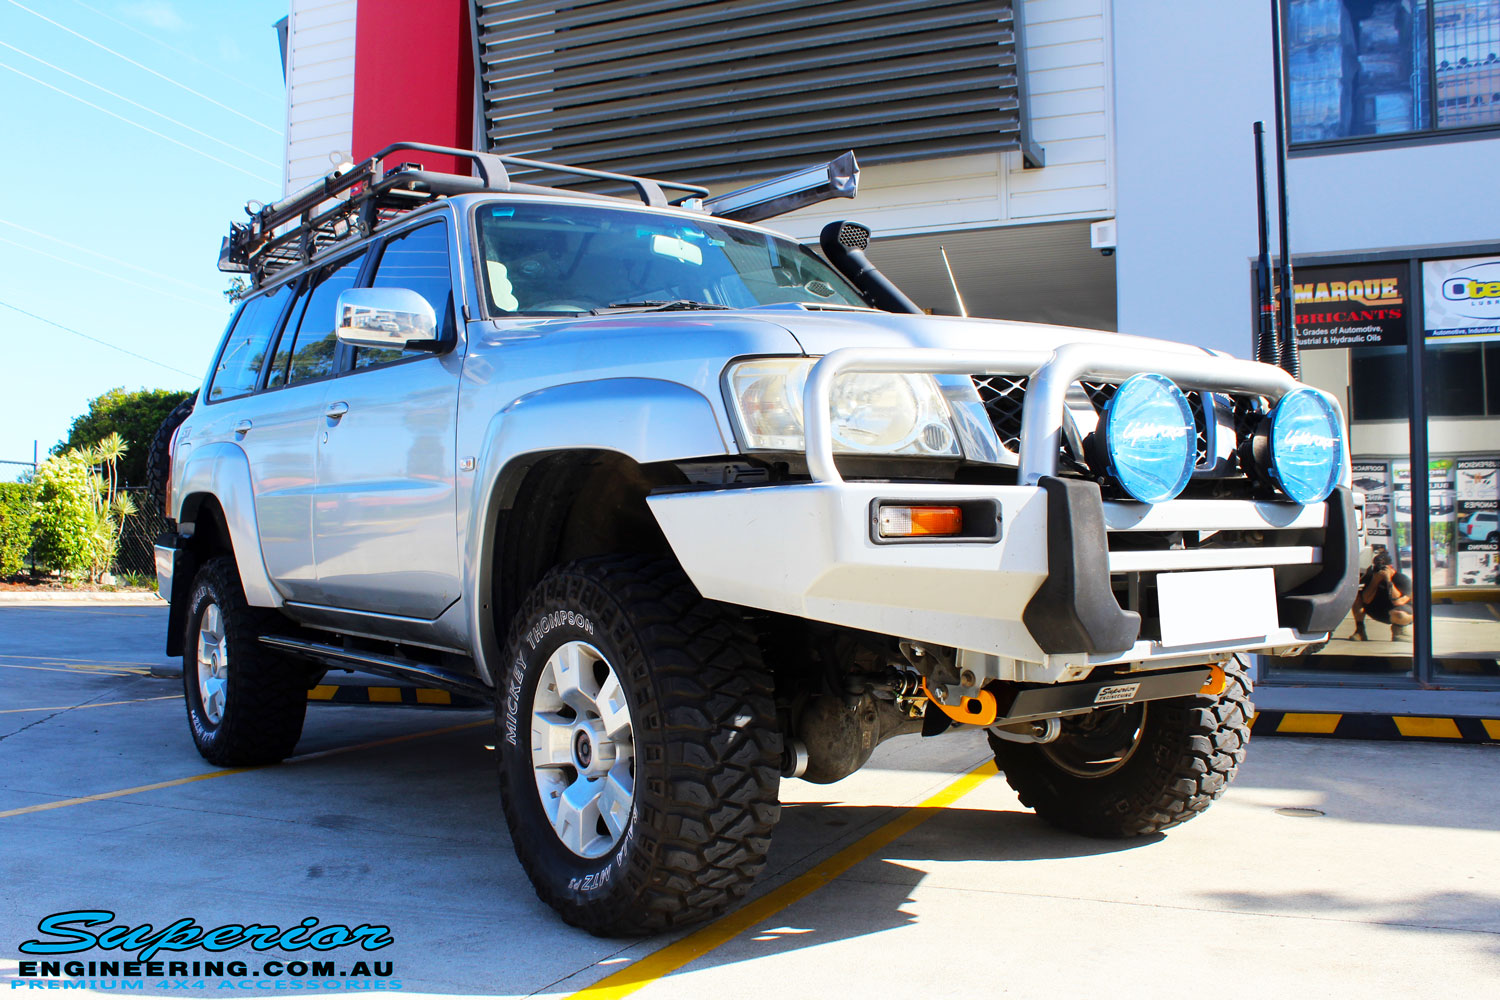 "Right front side view of a Silver Nissan Patrol GU Wagon after fitting a Superior Remote Reservoir Hybrid Dropped Radius 3"" Inch Lift Kit with Hybrid Radius Arms, Steering Damper, Upper & Lower Control Arms, Comp Spec Draglink, Front & Rear Panhard Rods, Superior Coil Tower Brace Kit, Superior Front Steering Radiator Guard, Body Lift and Airbag Man Coil Helper Ait Kit"